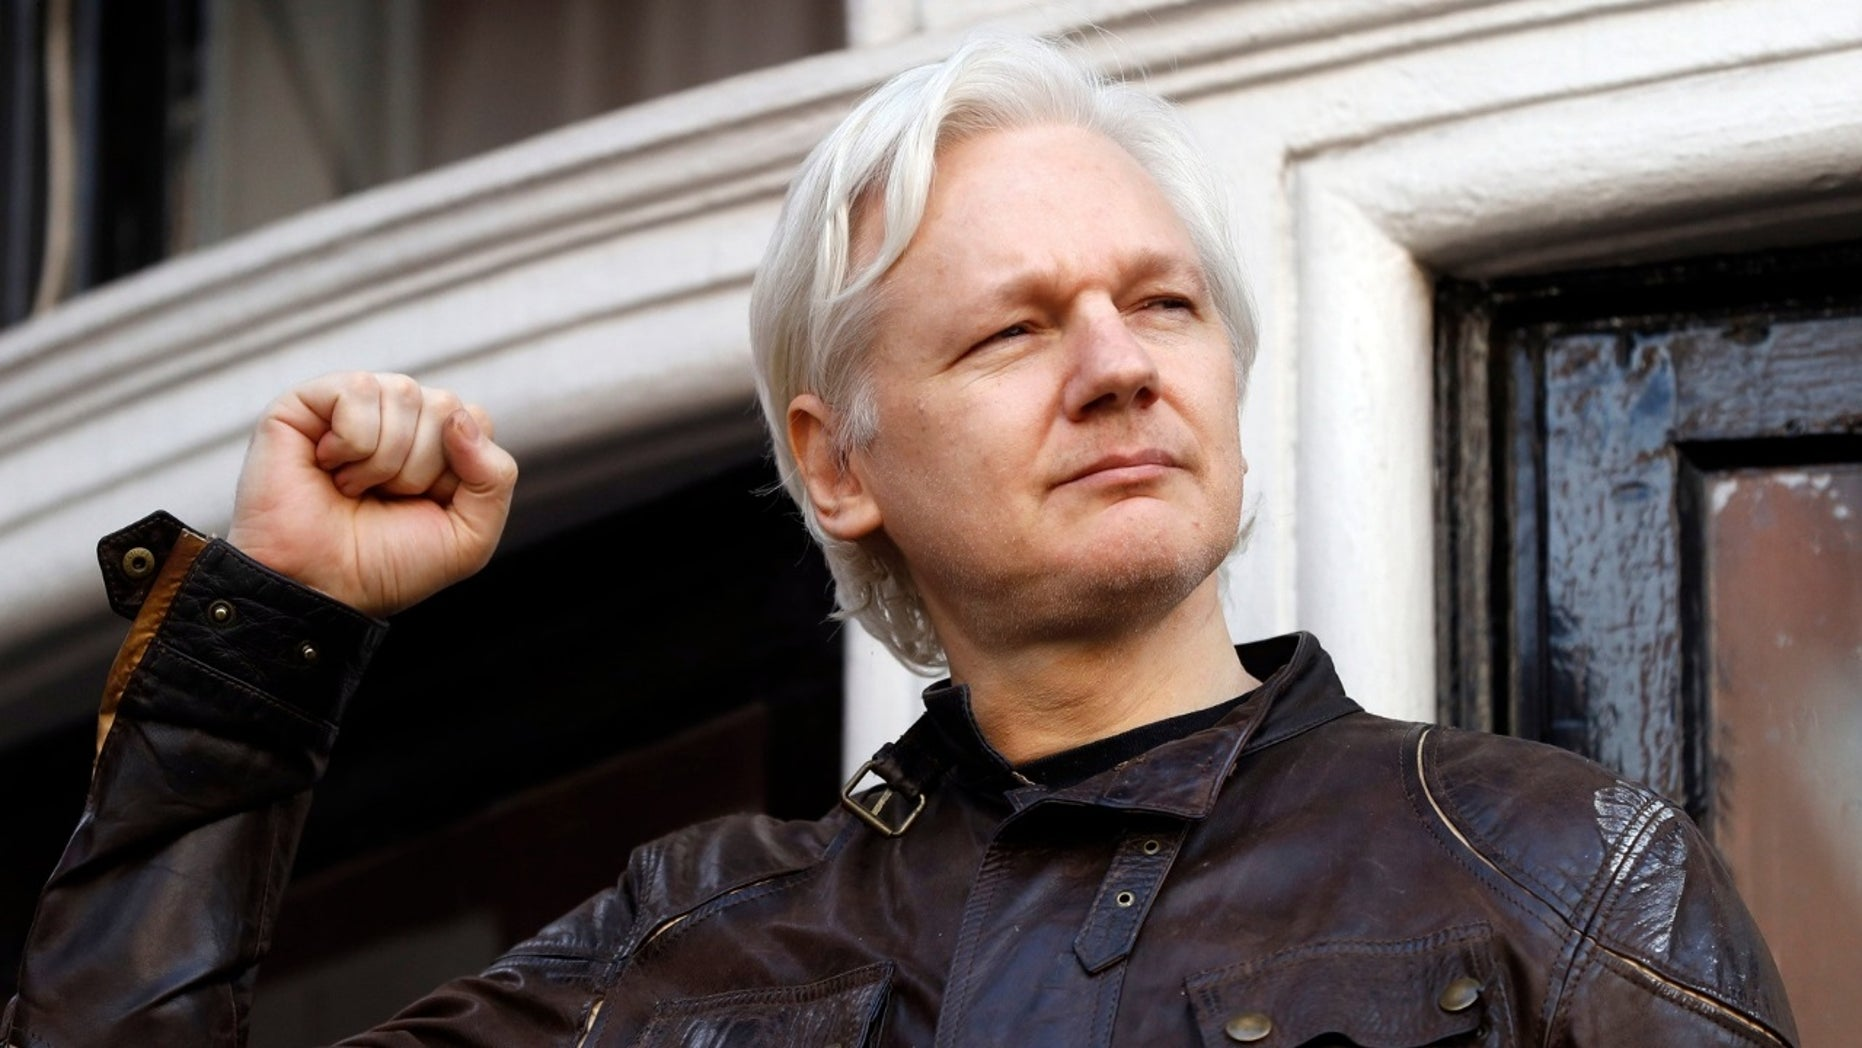 Ecuador has formally ordered Julian Assange to steer clear of topics that could harm its diplomatic interests if he wants to be reconnected to the internet, a memo stated.